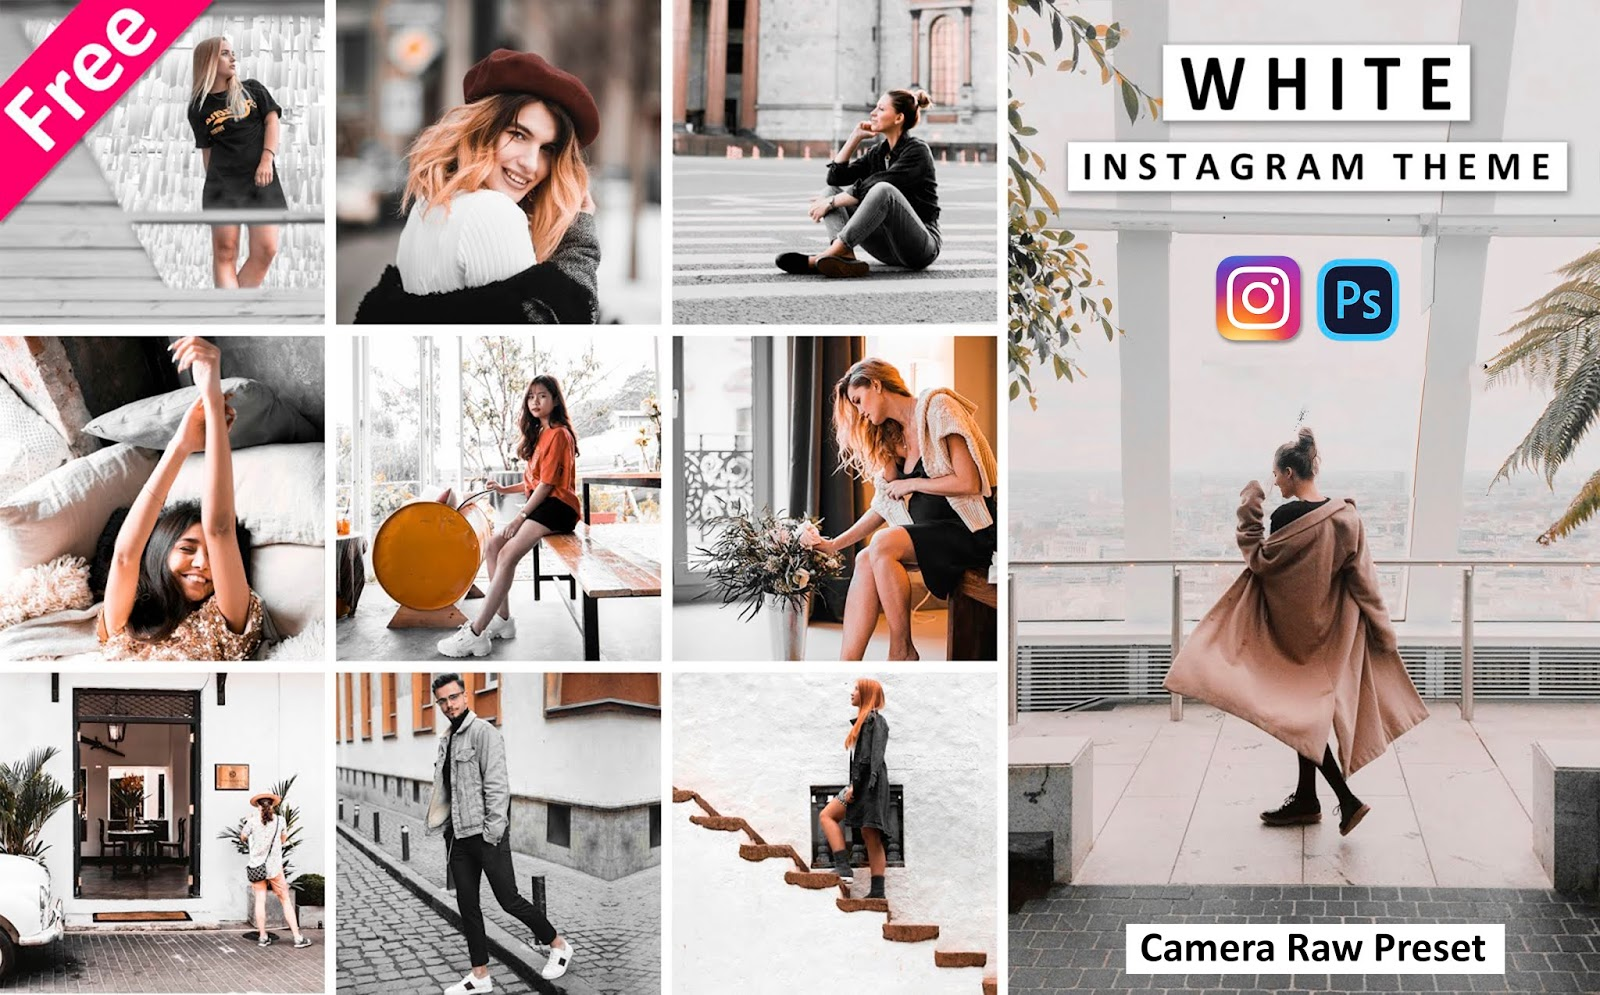 Download Instagram White Camera Raw Presets for Free | How to Create White Theme of Instagram in Photoshop